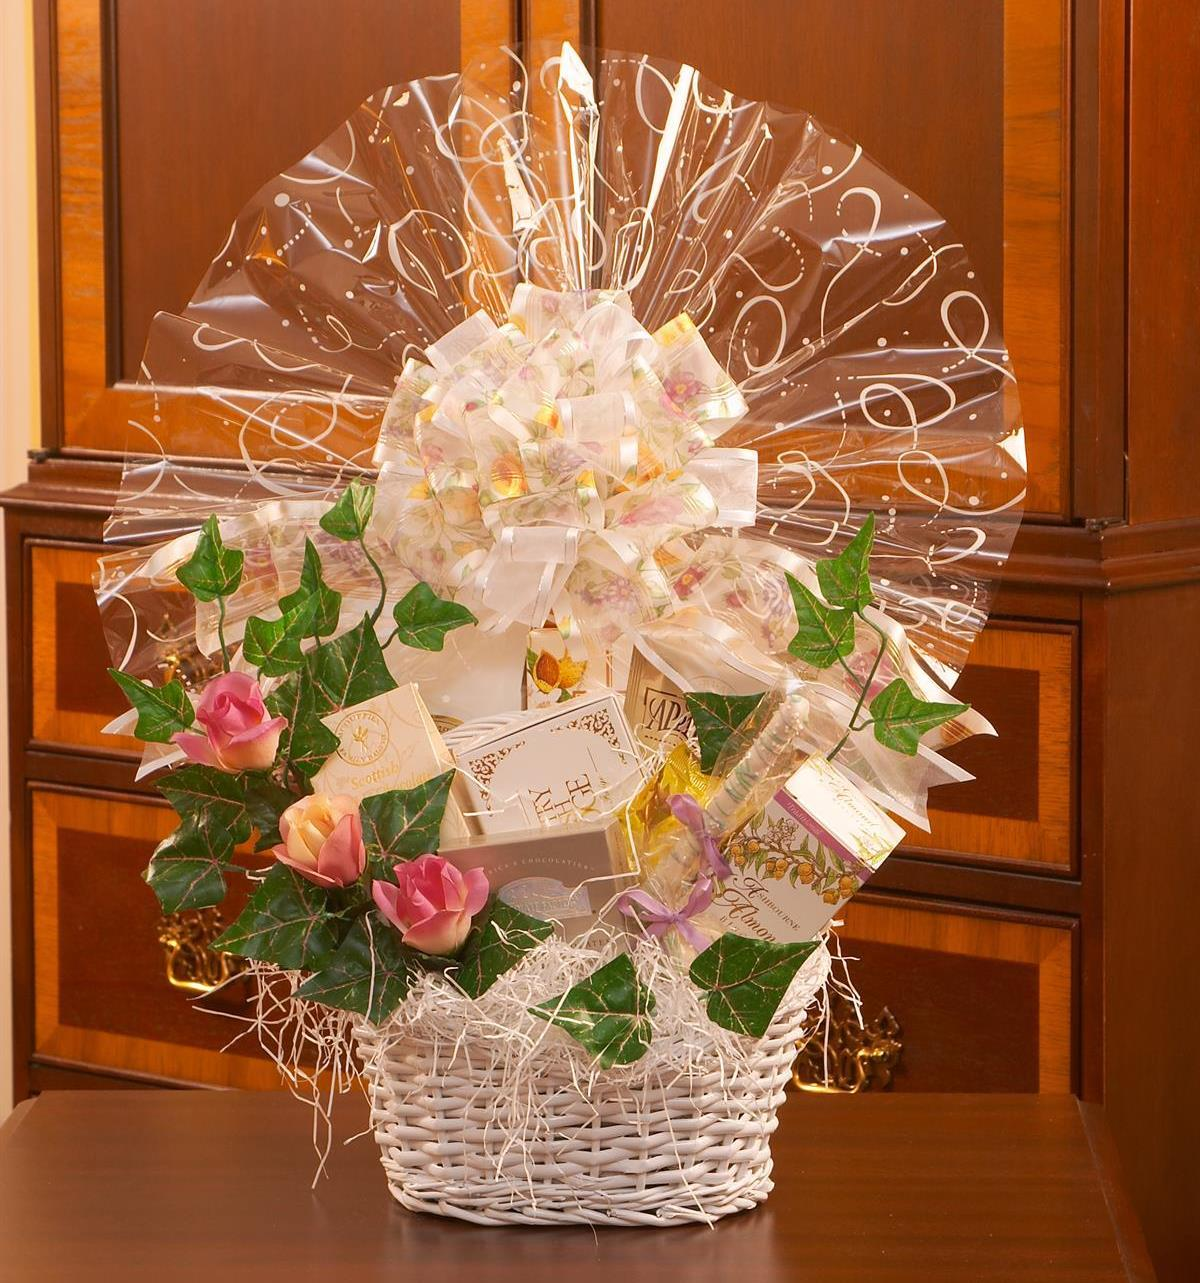 Wedding gift basket featuring delicious sweets and treats.